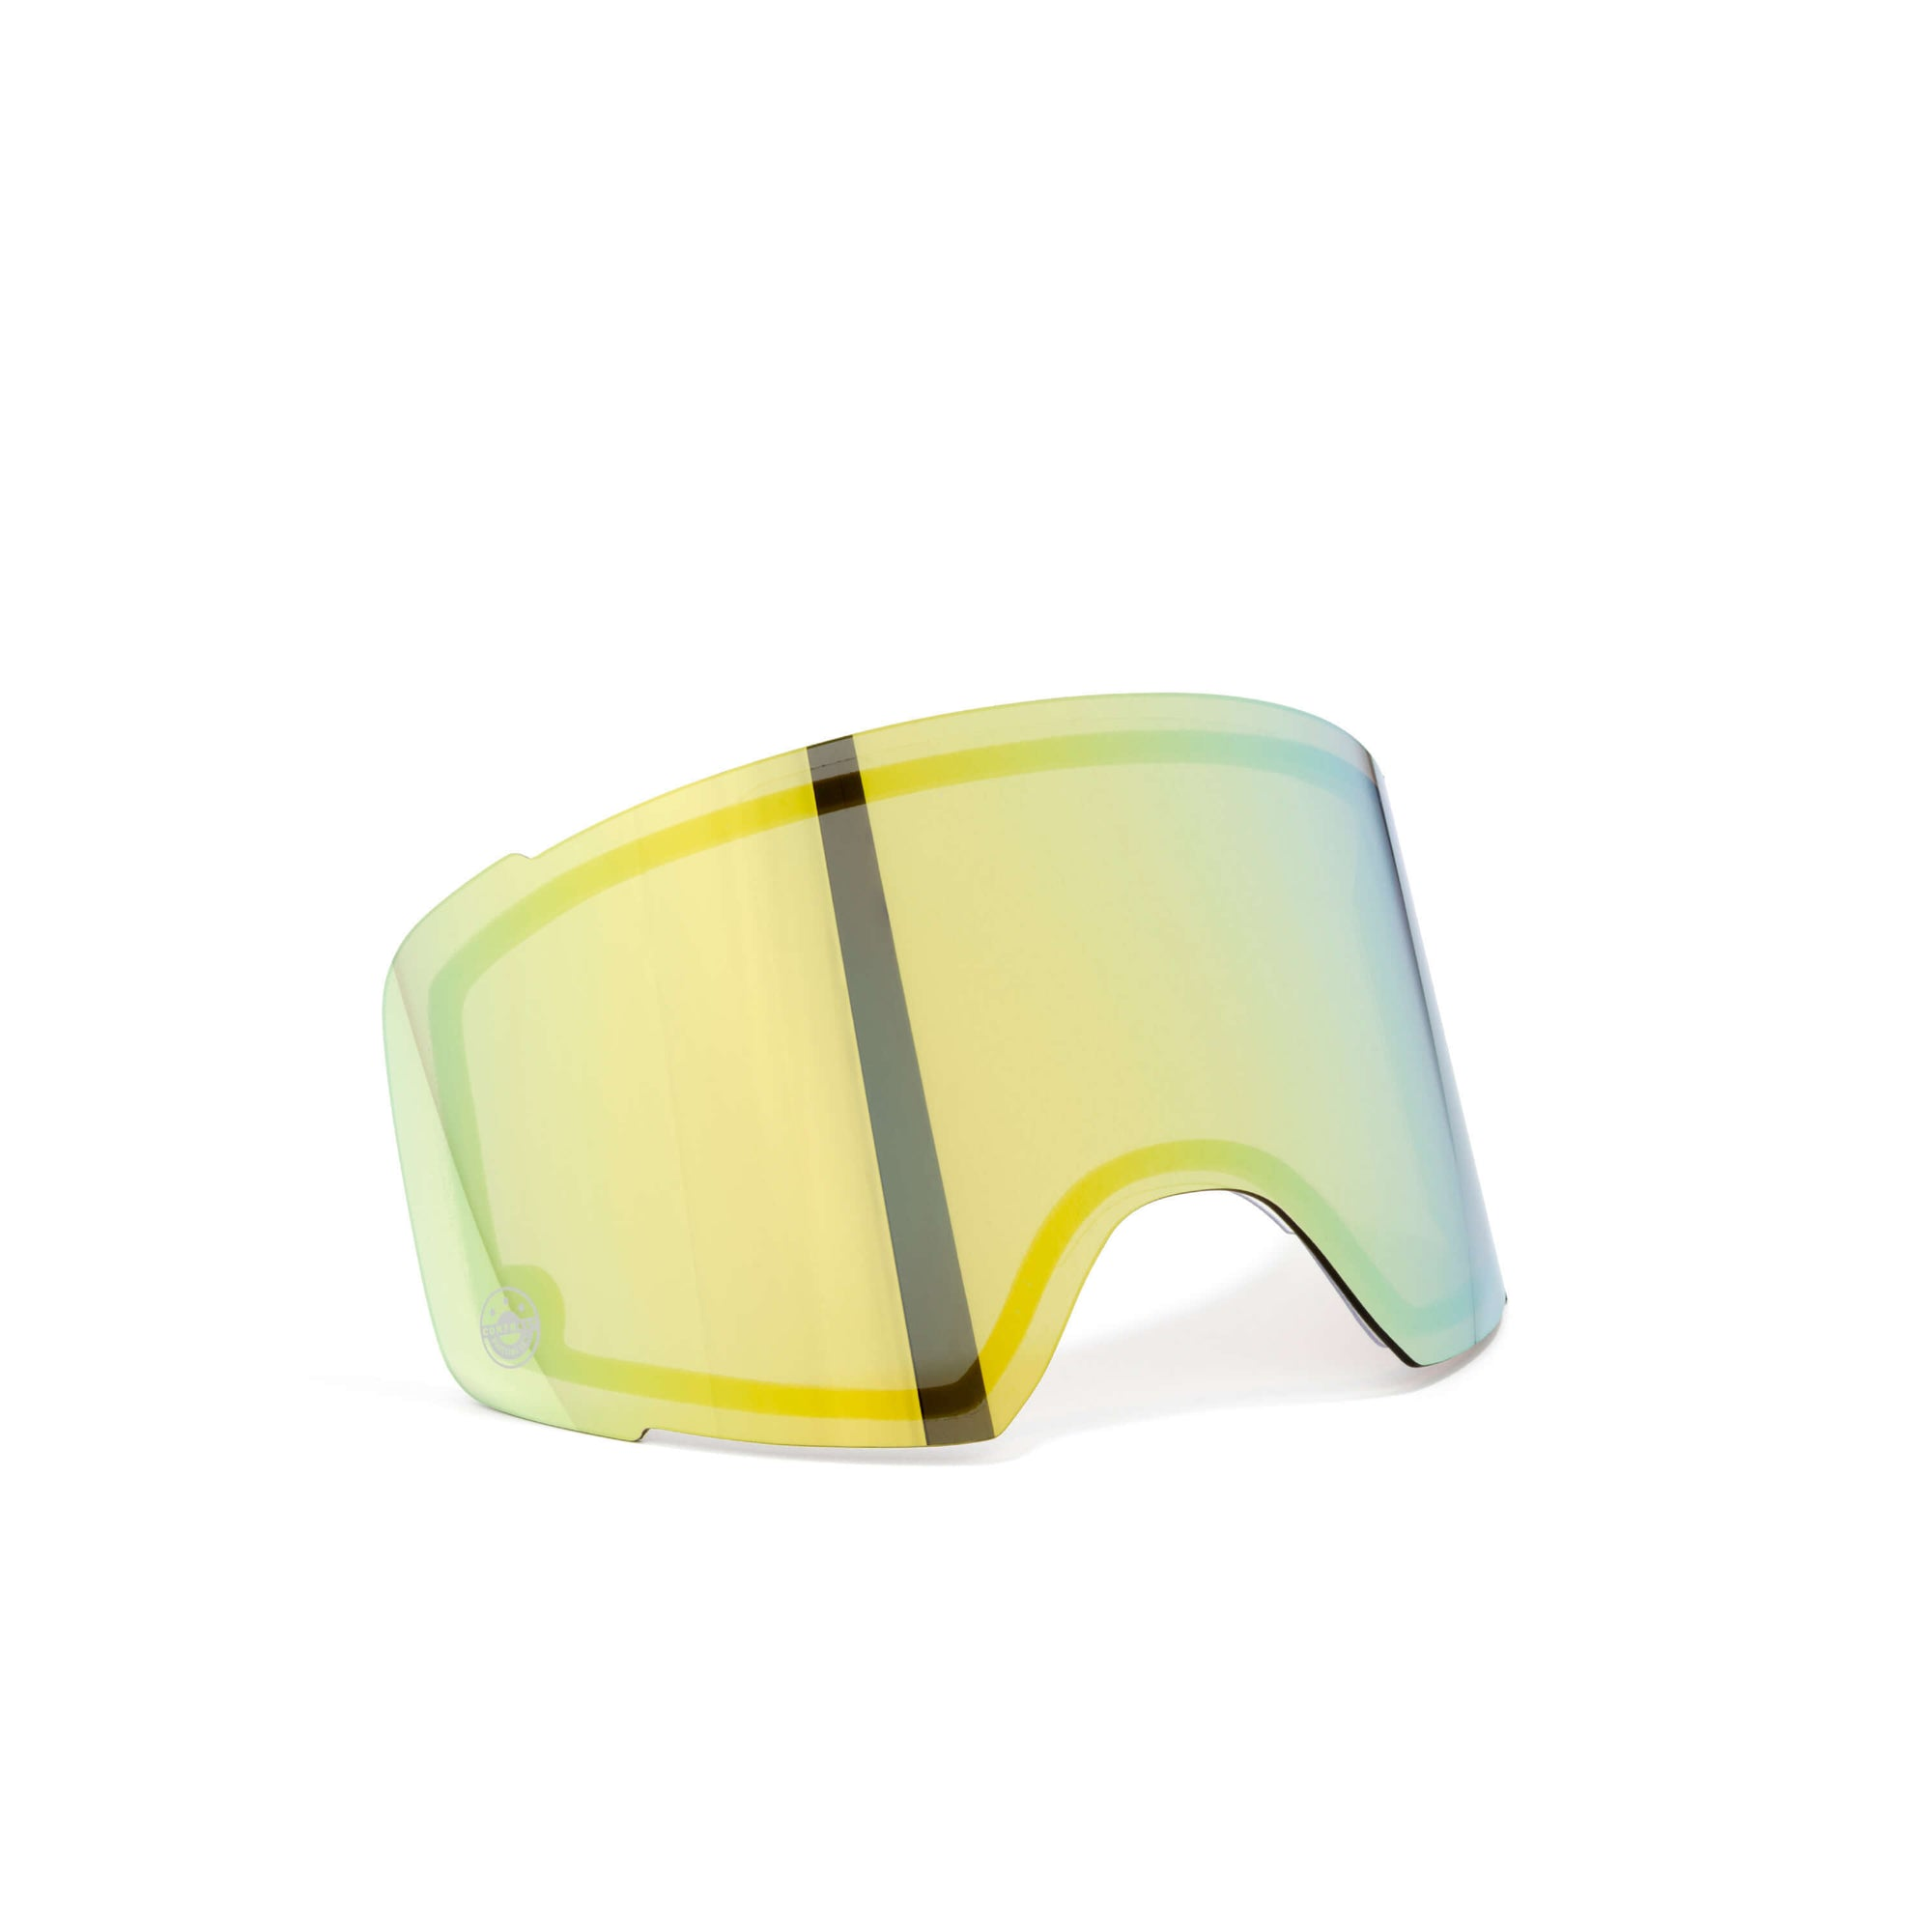 Simplify Double Lens Cbl Hero Mirror - Spare Lenses